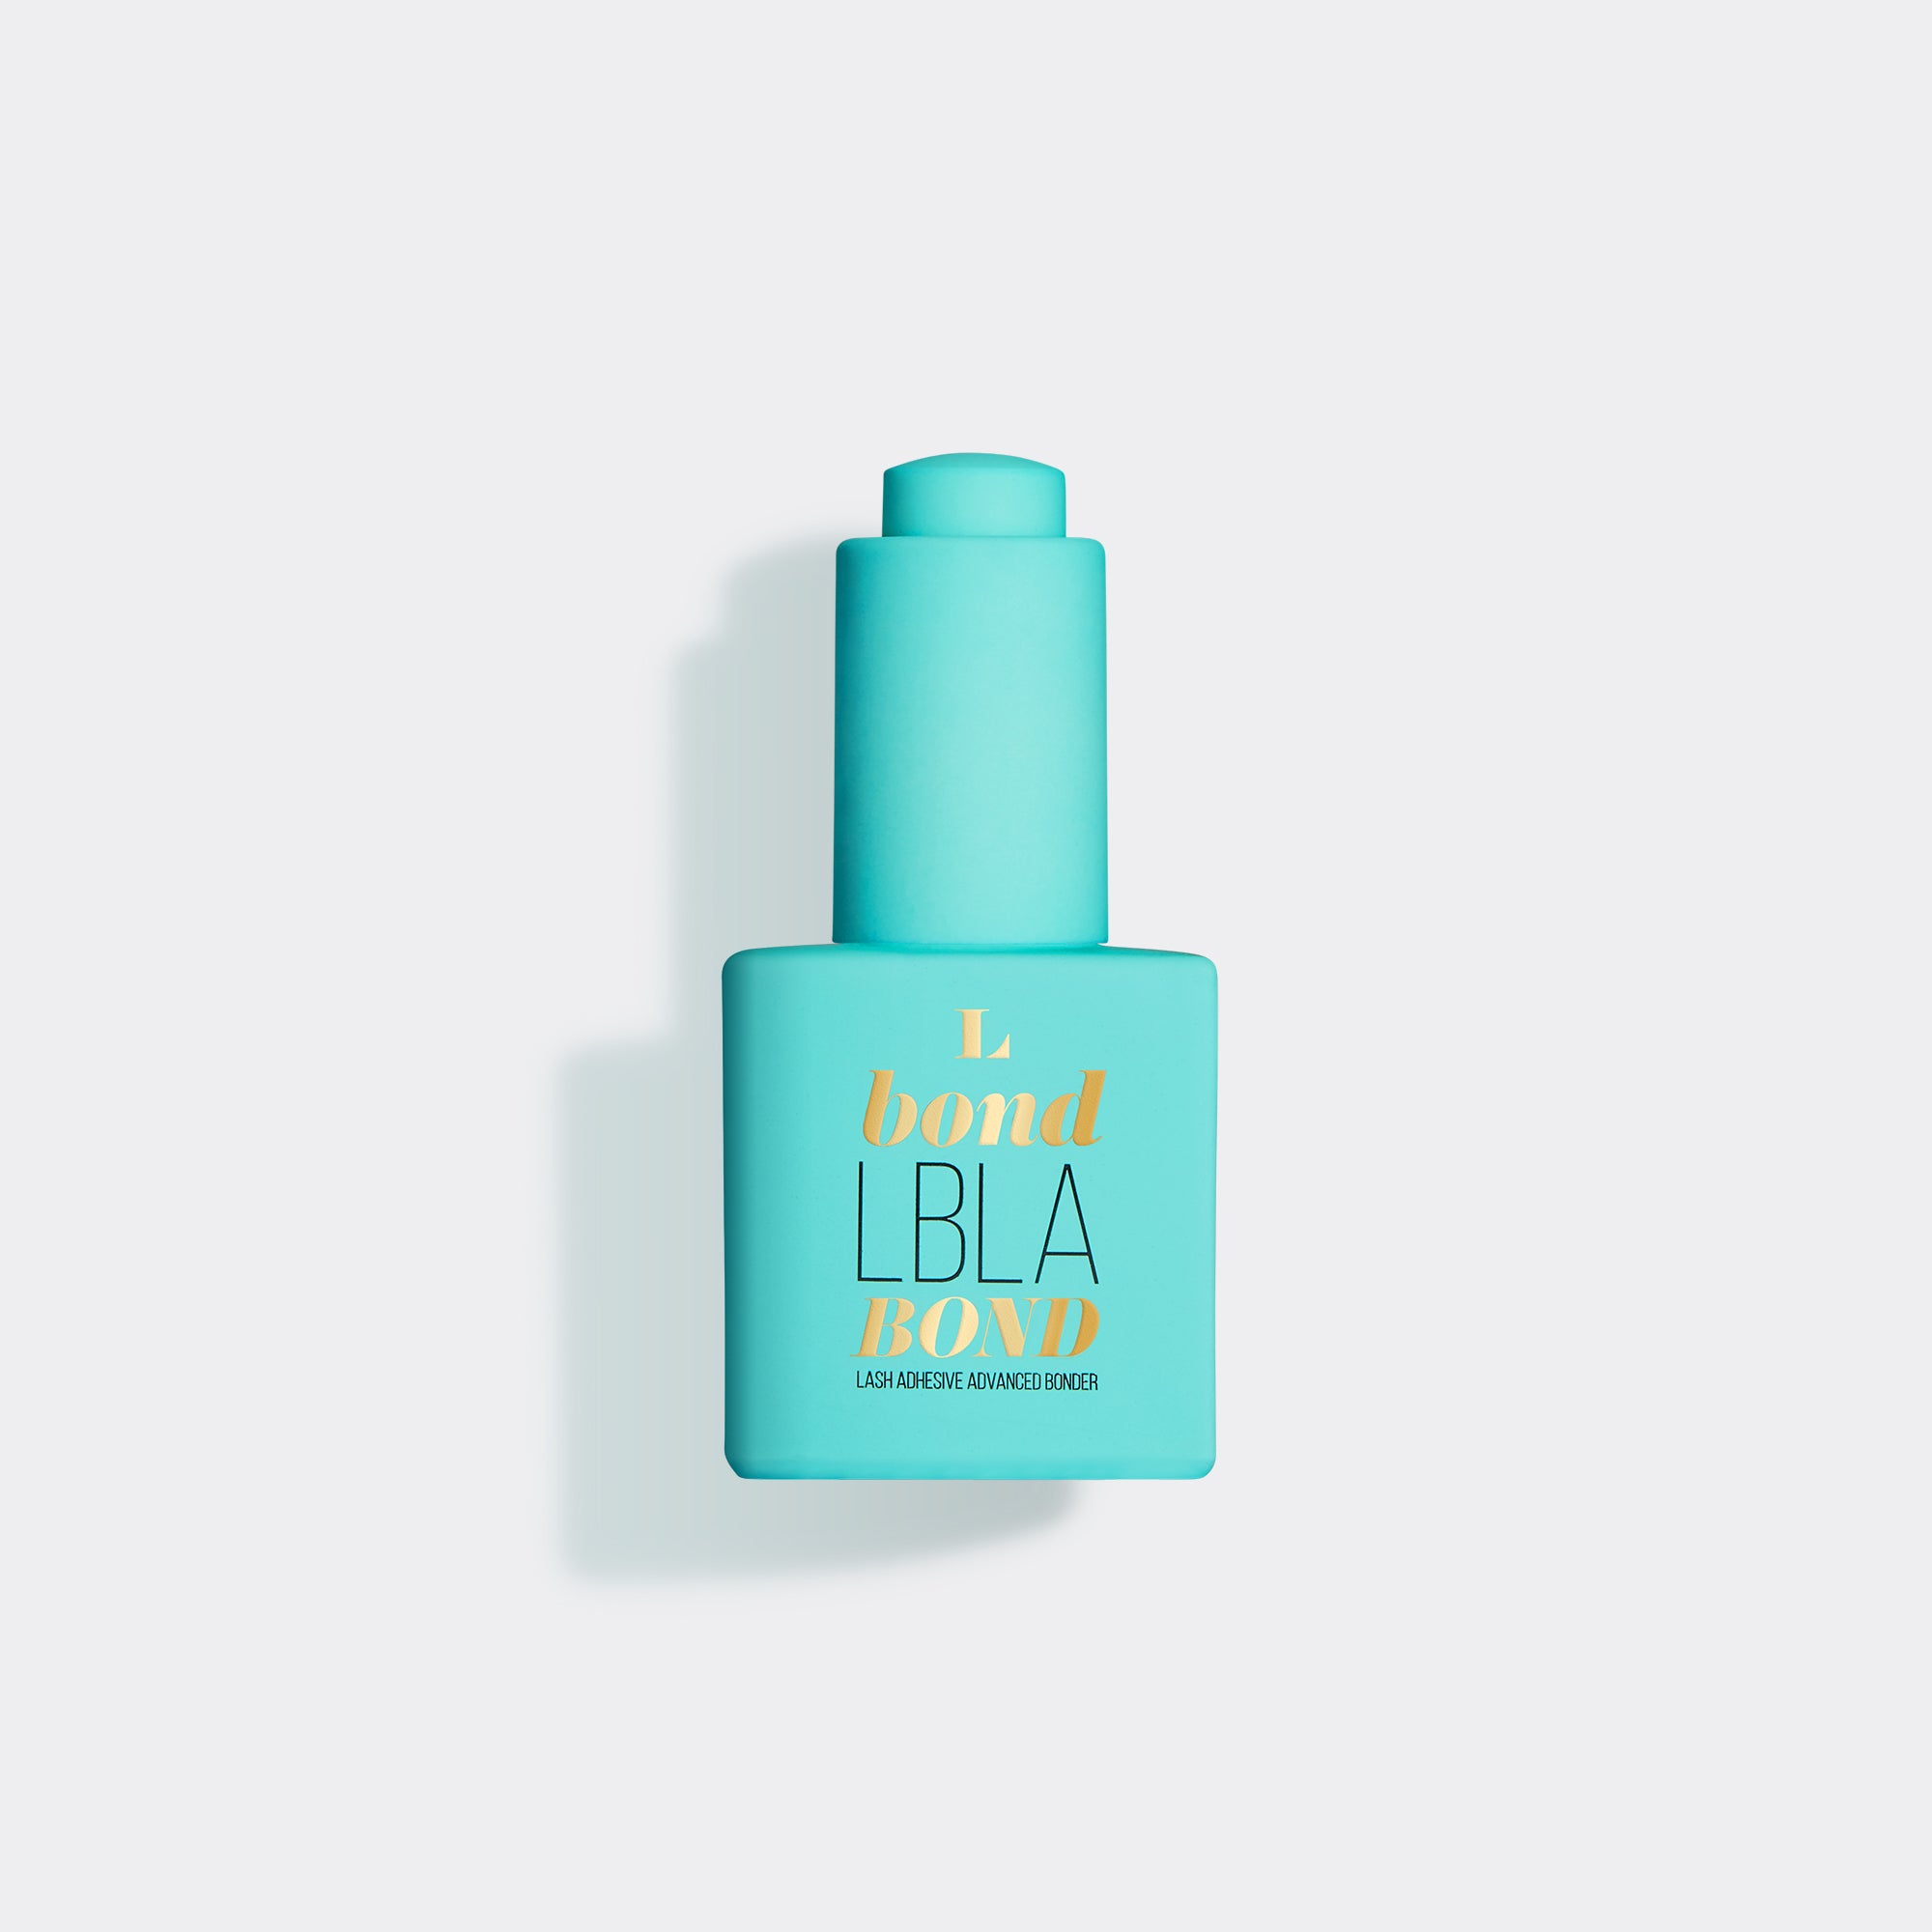 LBLA Bond - Lash curing solution